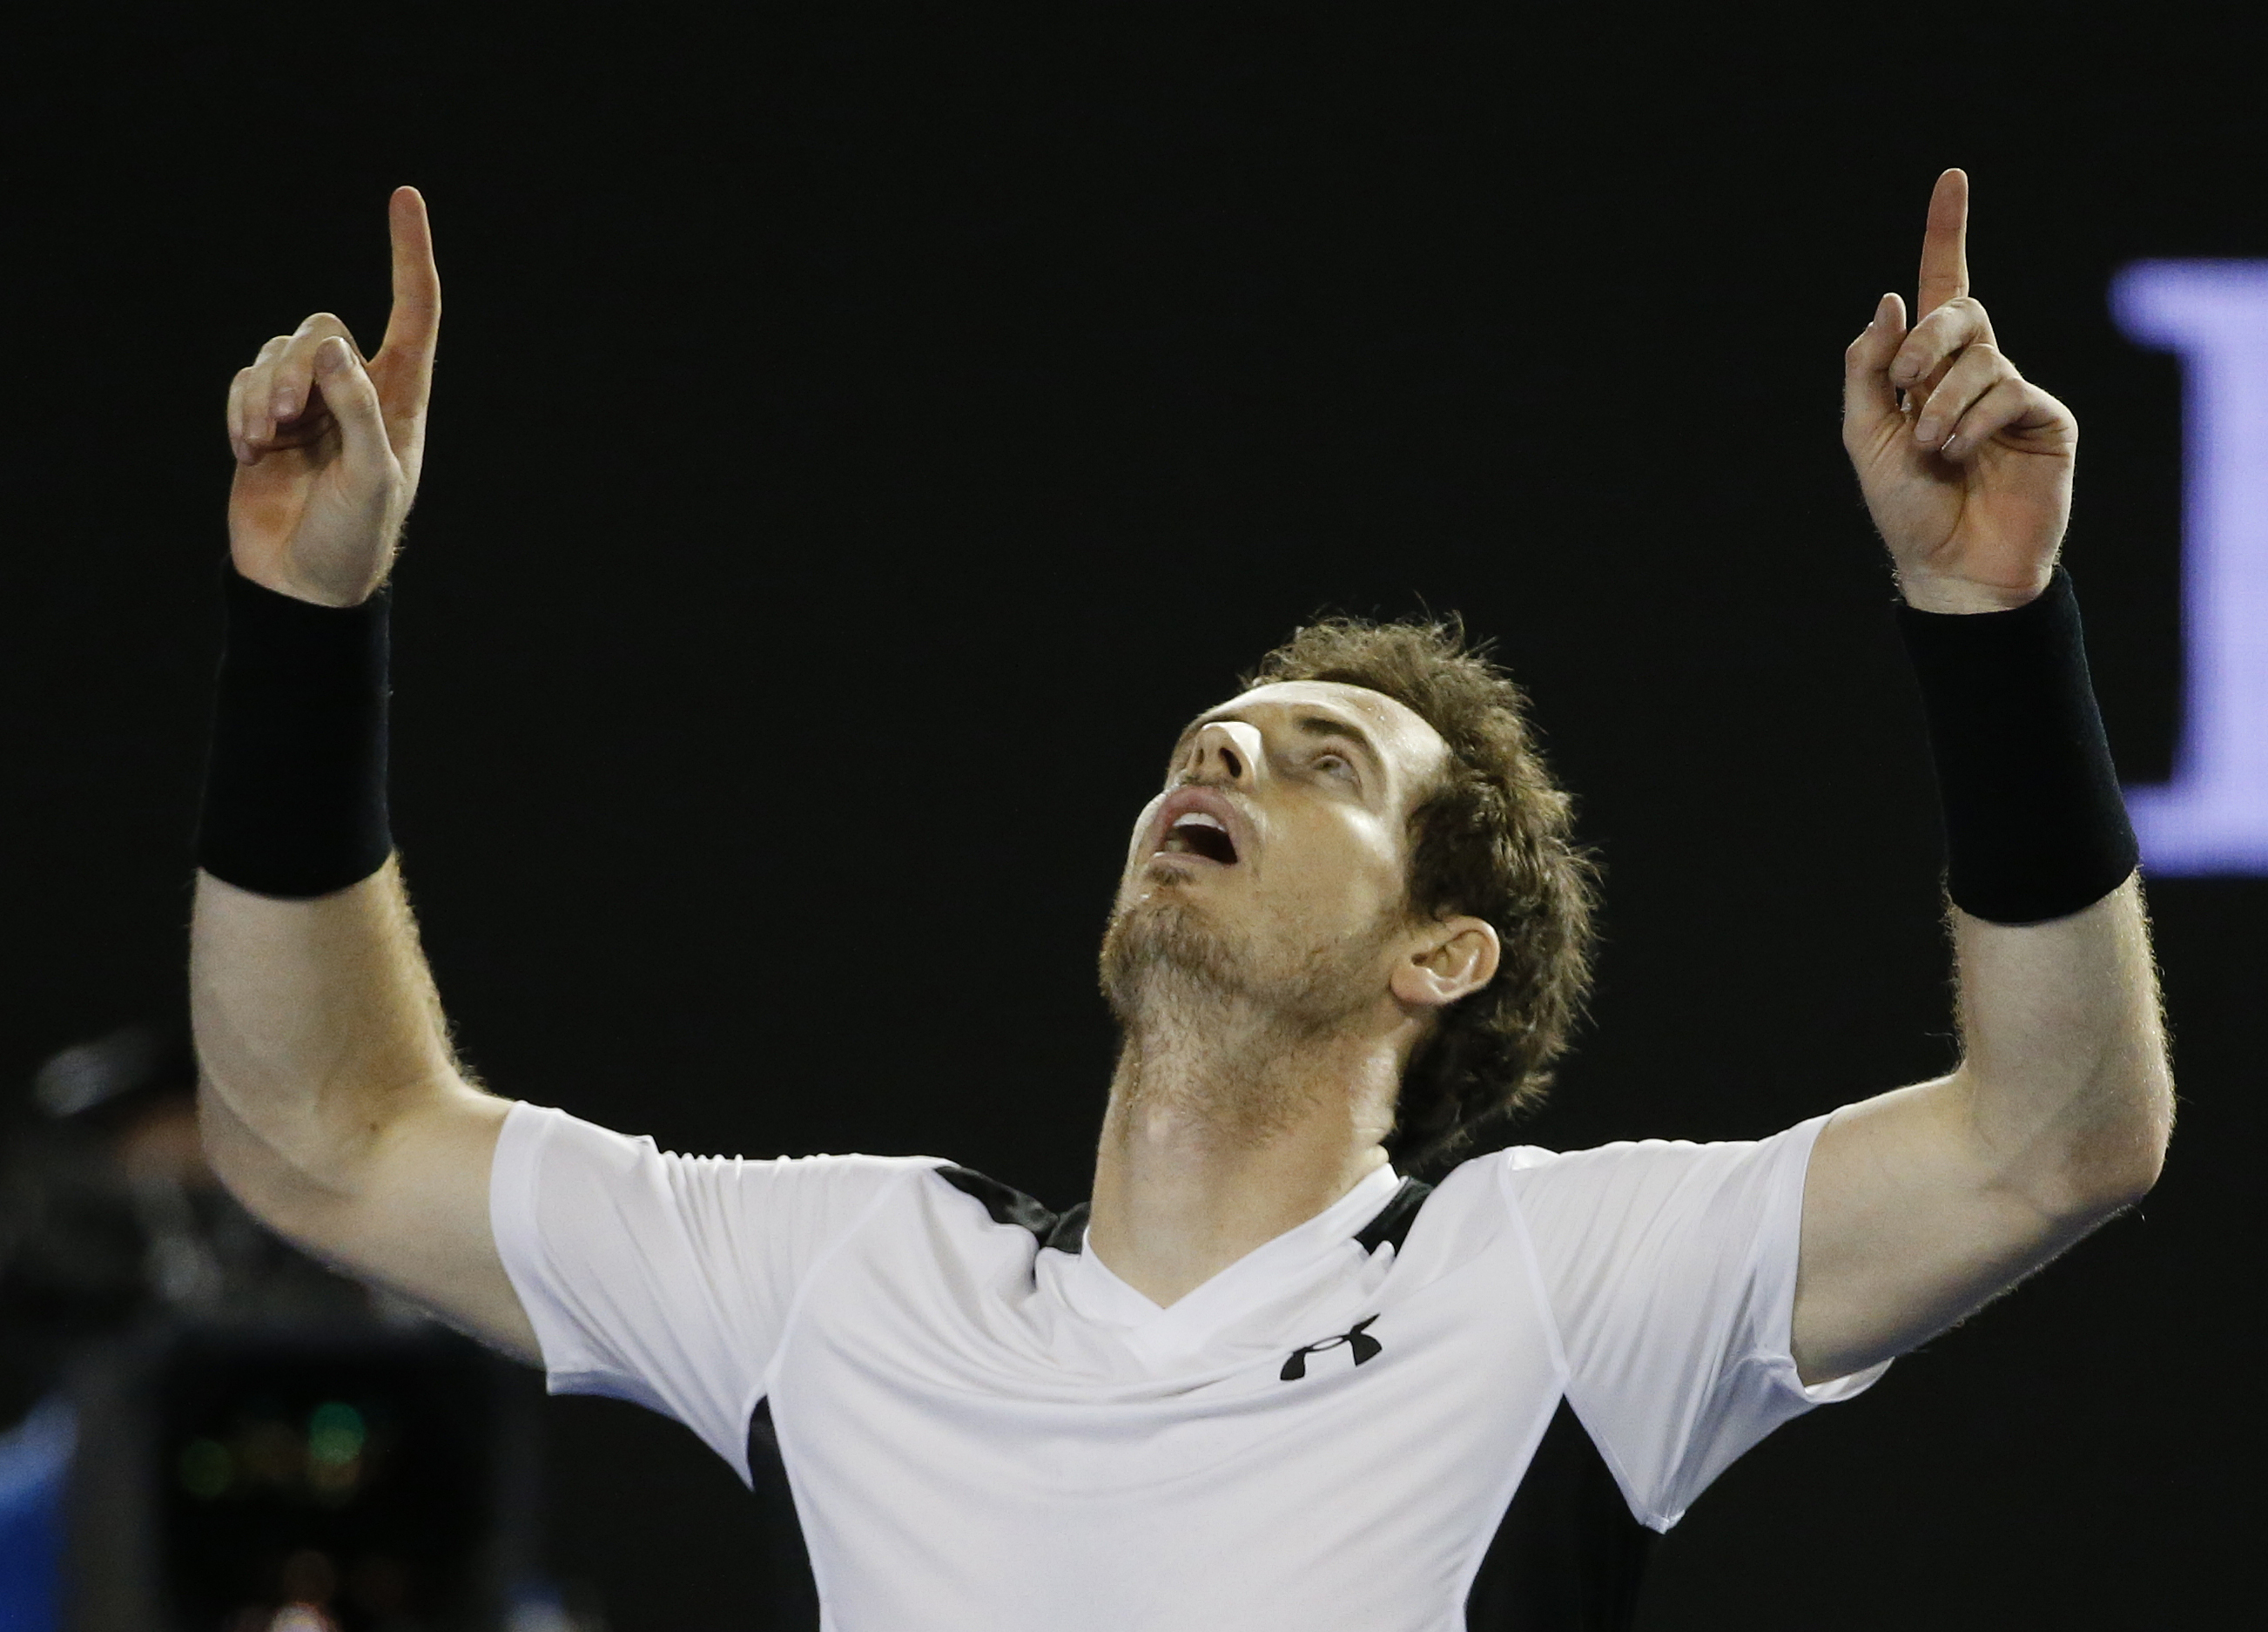 Andy Murray of Britain celebrates after defeating Milos Raonic of Canada in their semifinal match at the Australian Open tennis championships in Melbourne, Australia, Friday, Jan. 29, 2016.(AP Photo/Vincent Thian)